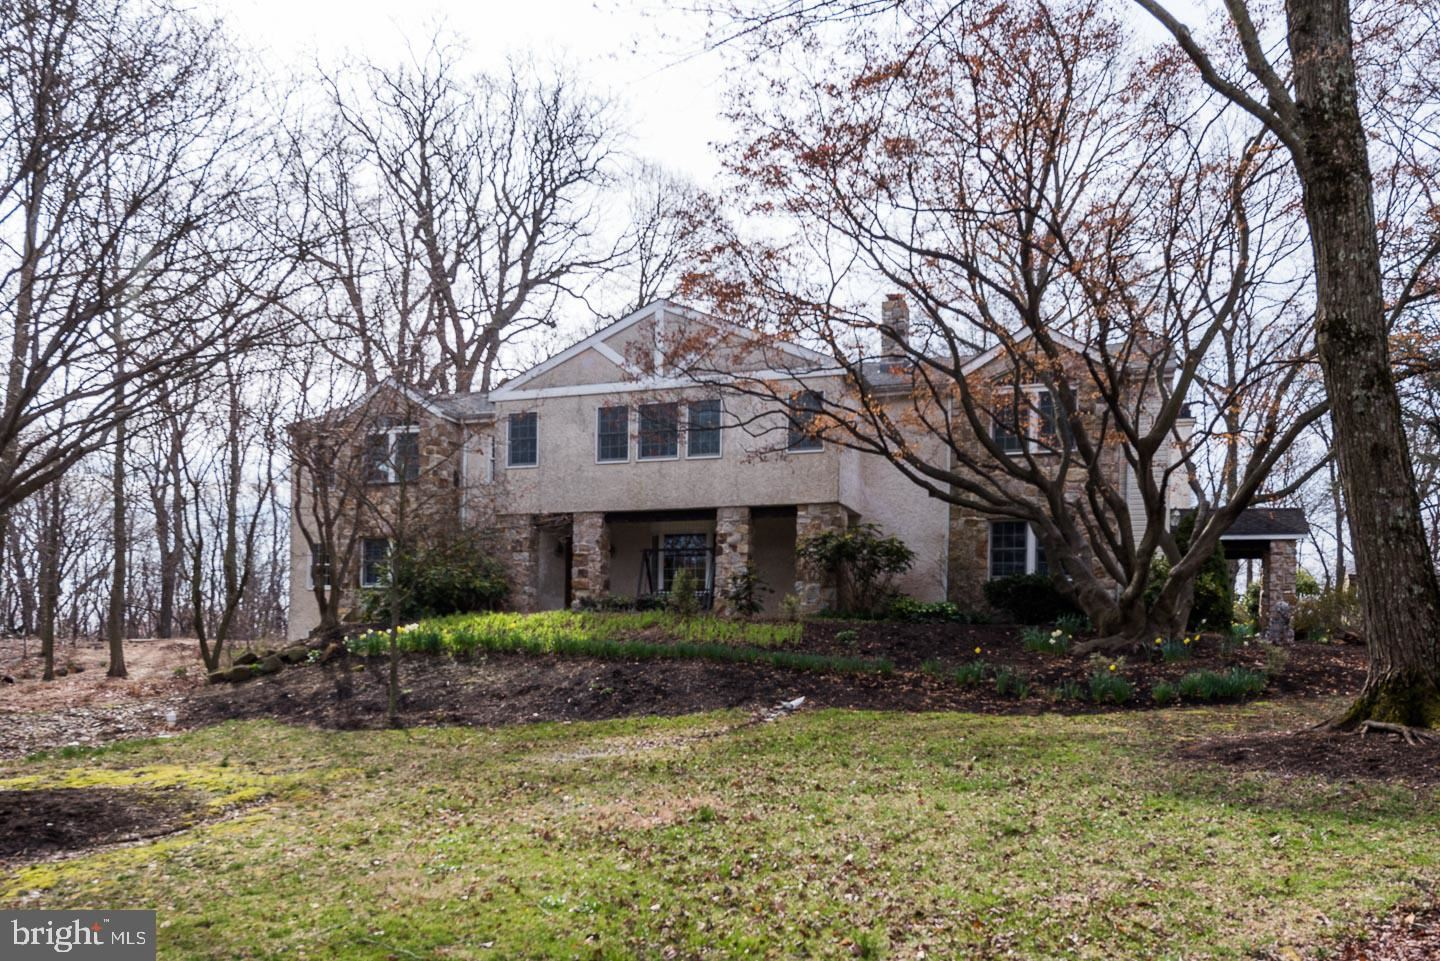 1344 MORSTEIN RD, West Chester, PA 19380 - #: PACT503824